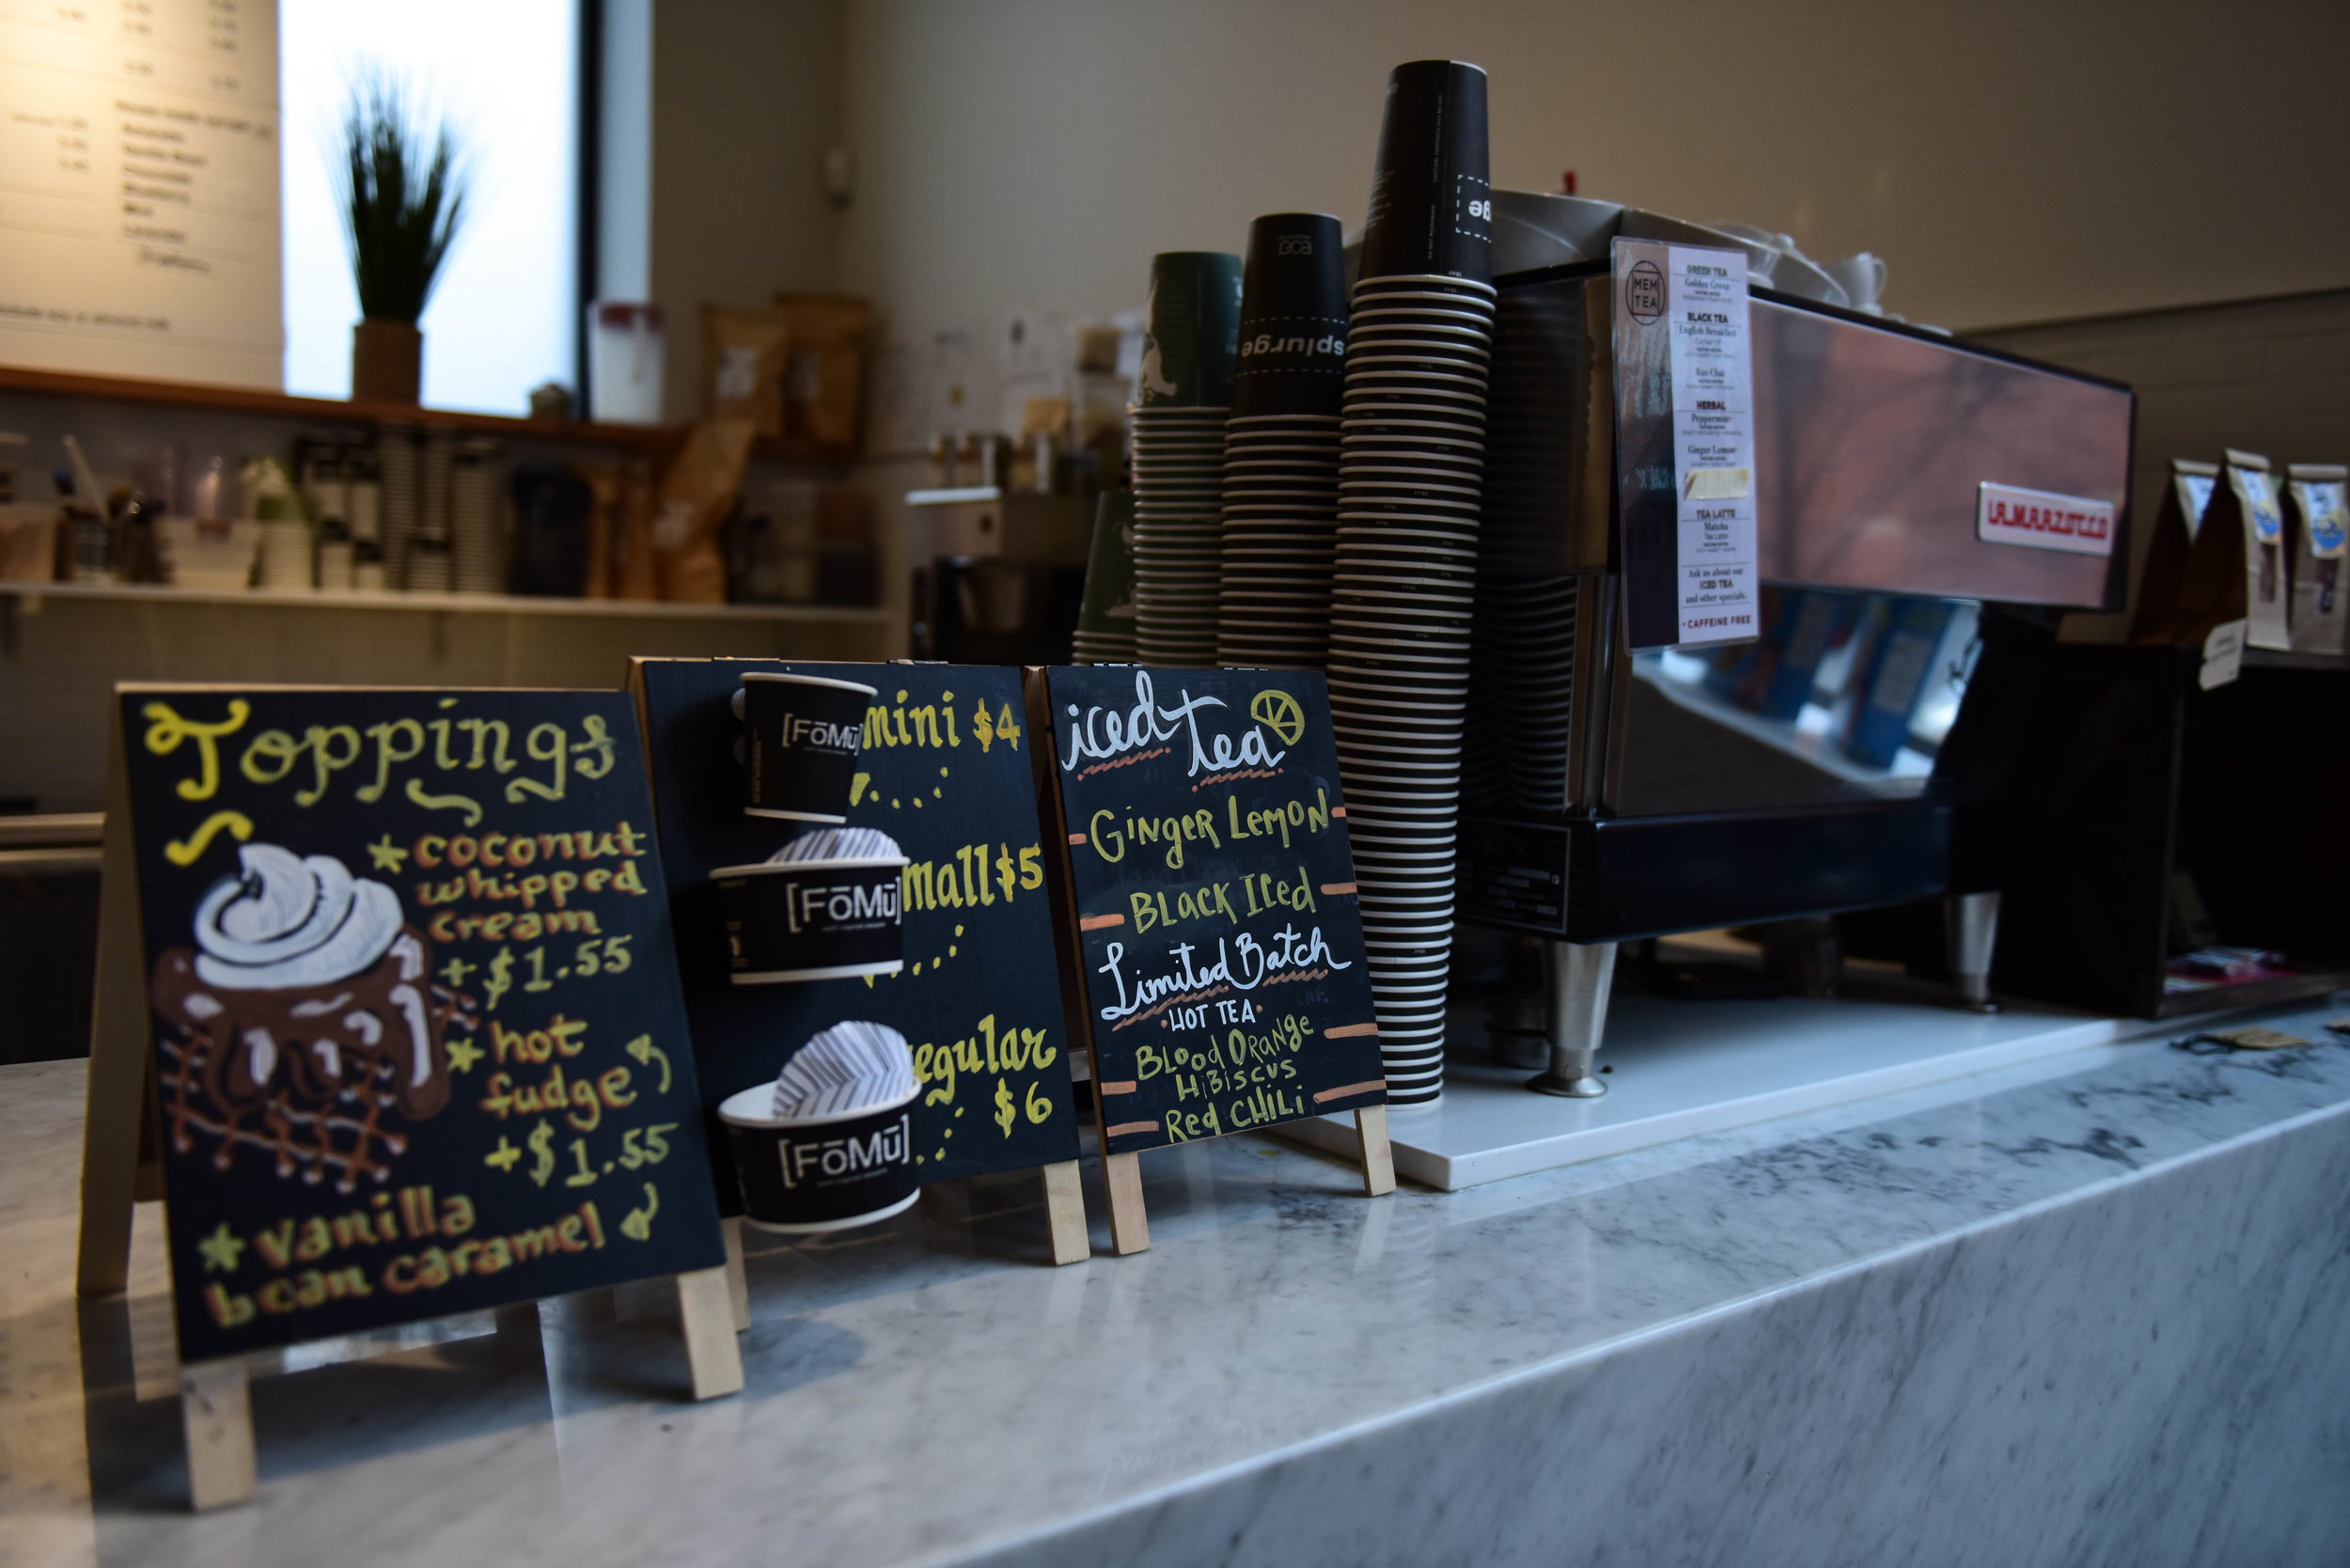 """Customers can also buy teas and coffees at FoMu's cafes, from other local businesses MEM Tea and George Howell Coffee. """"You want to see your community succeed and these thoughtful purveyors do well,"""" Jalal says. """"It's a great collaboration."""""""